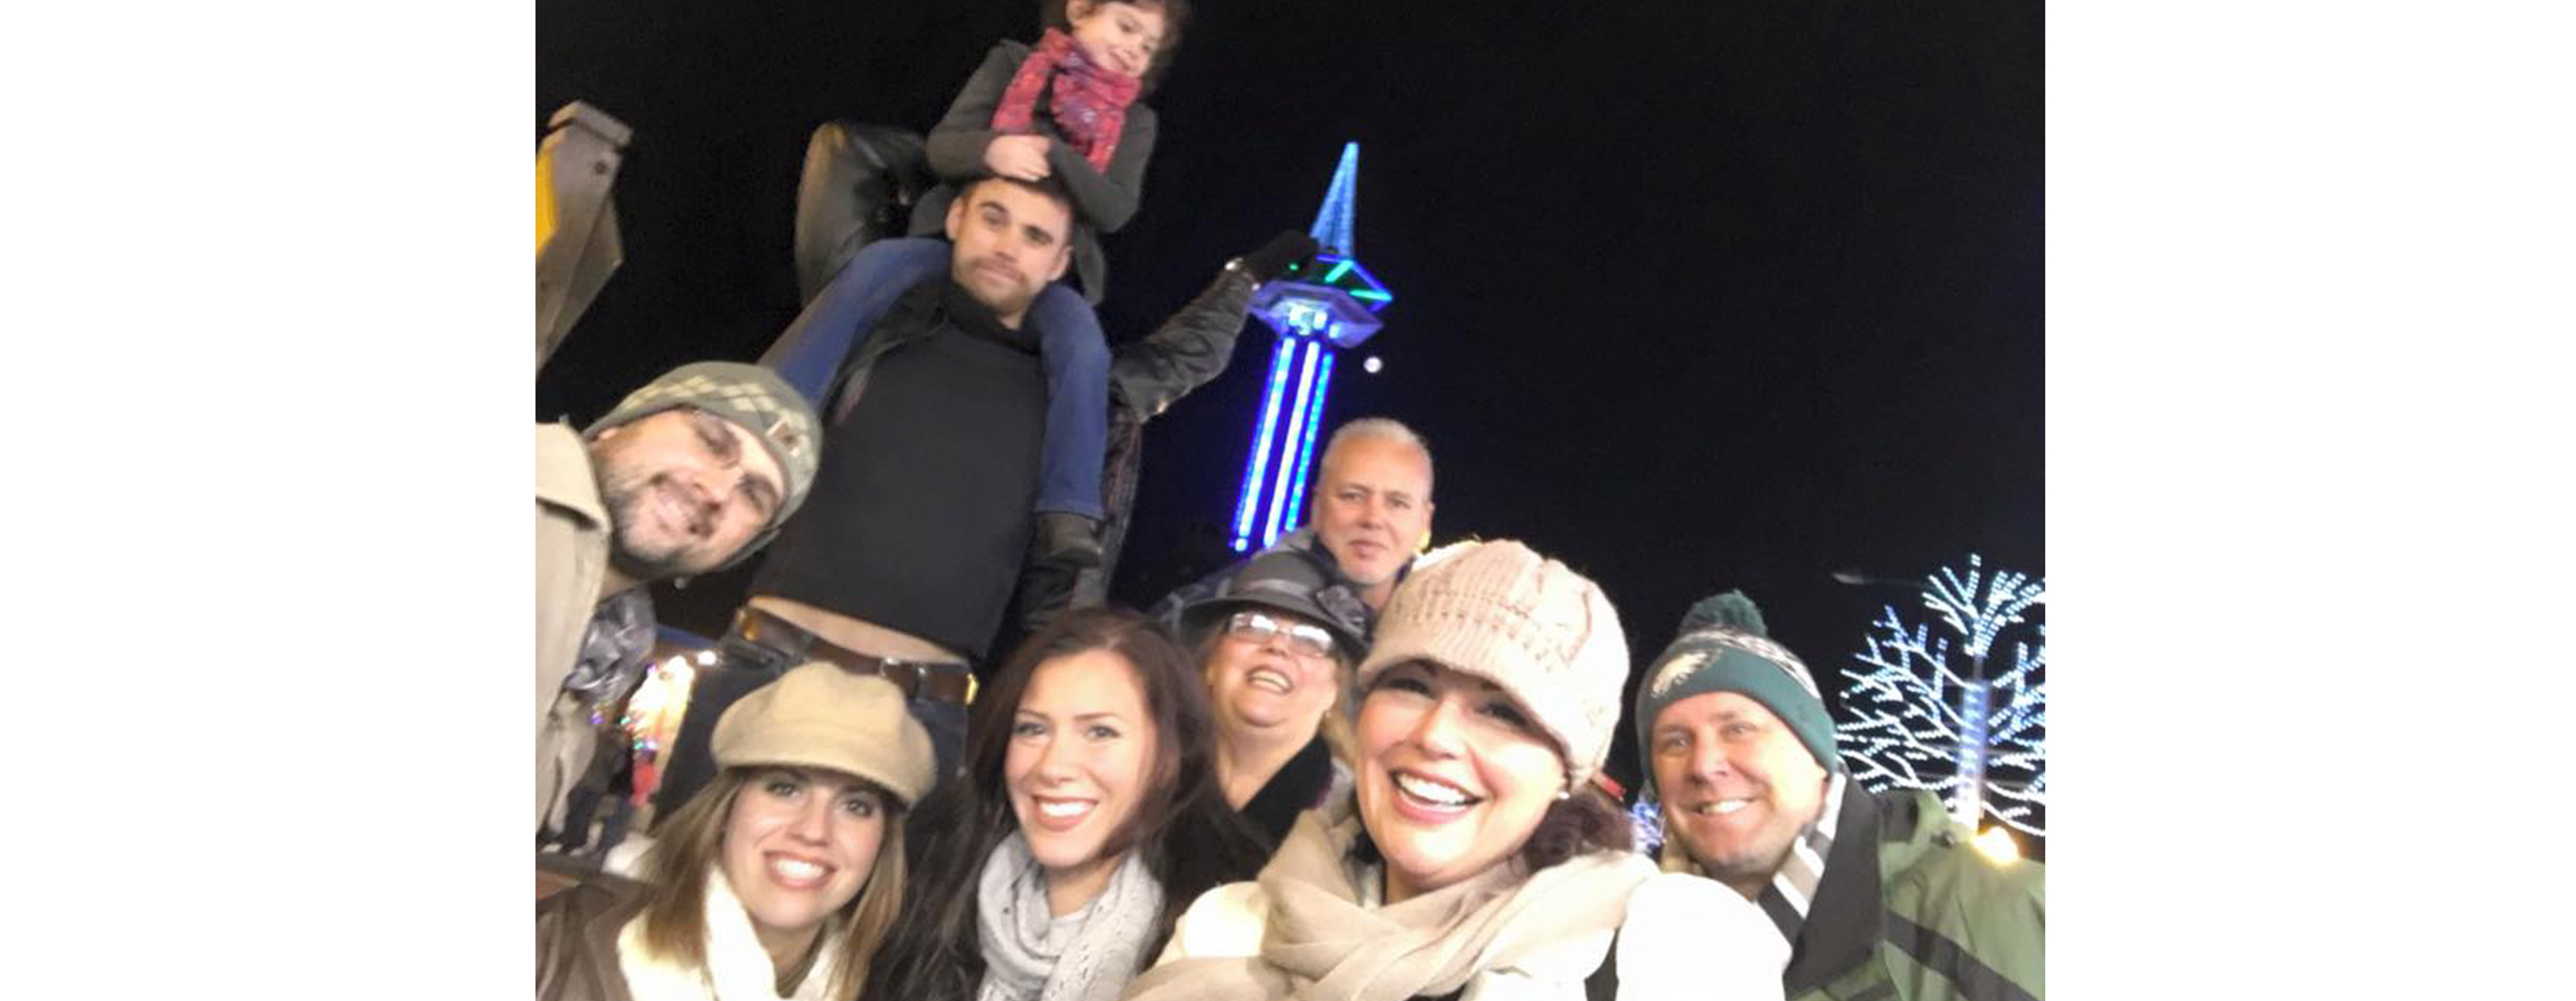 Michelle Suarez is pictured with a group of people outdoors at night in a chilly downtown setting